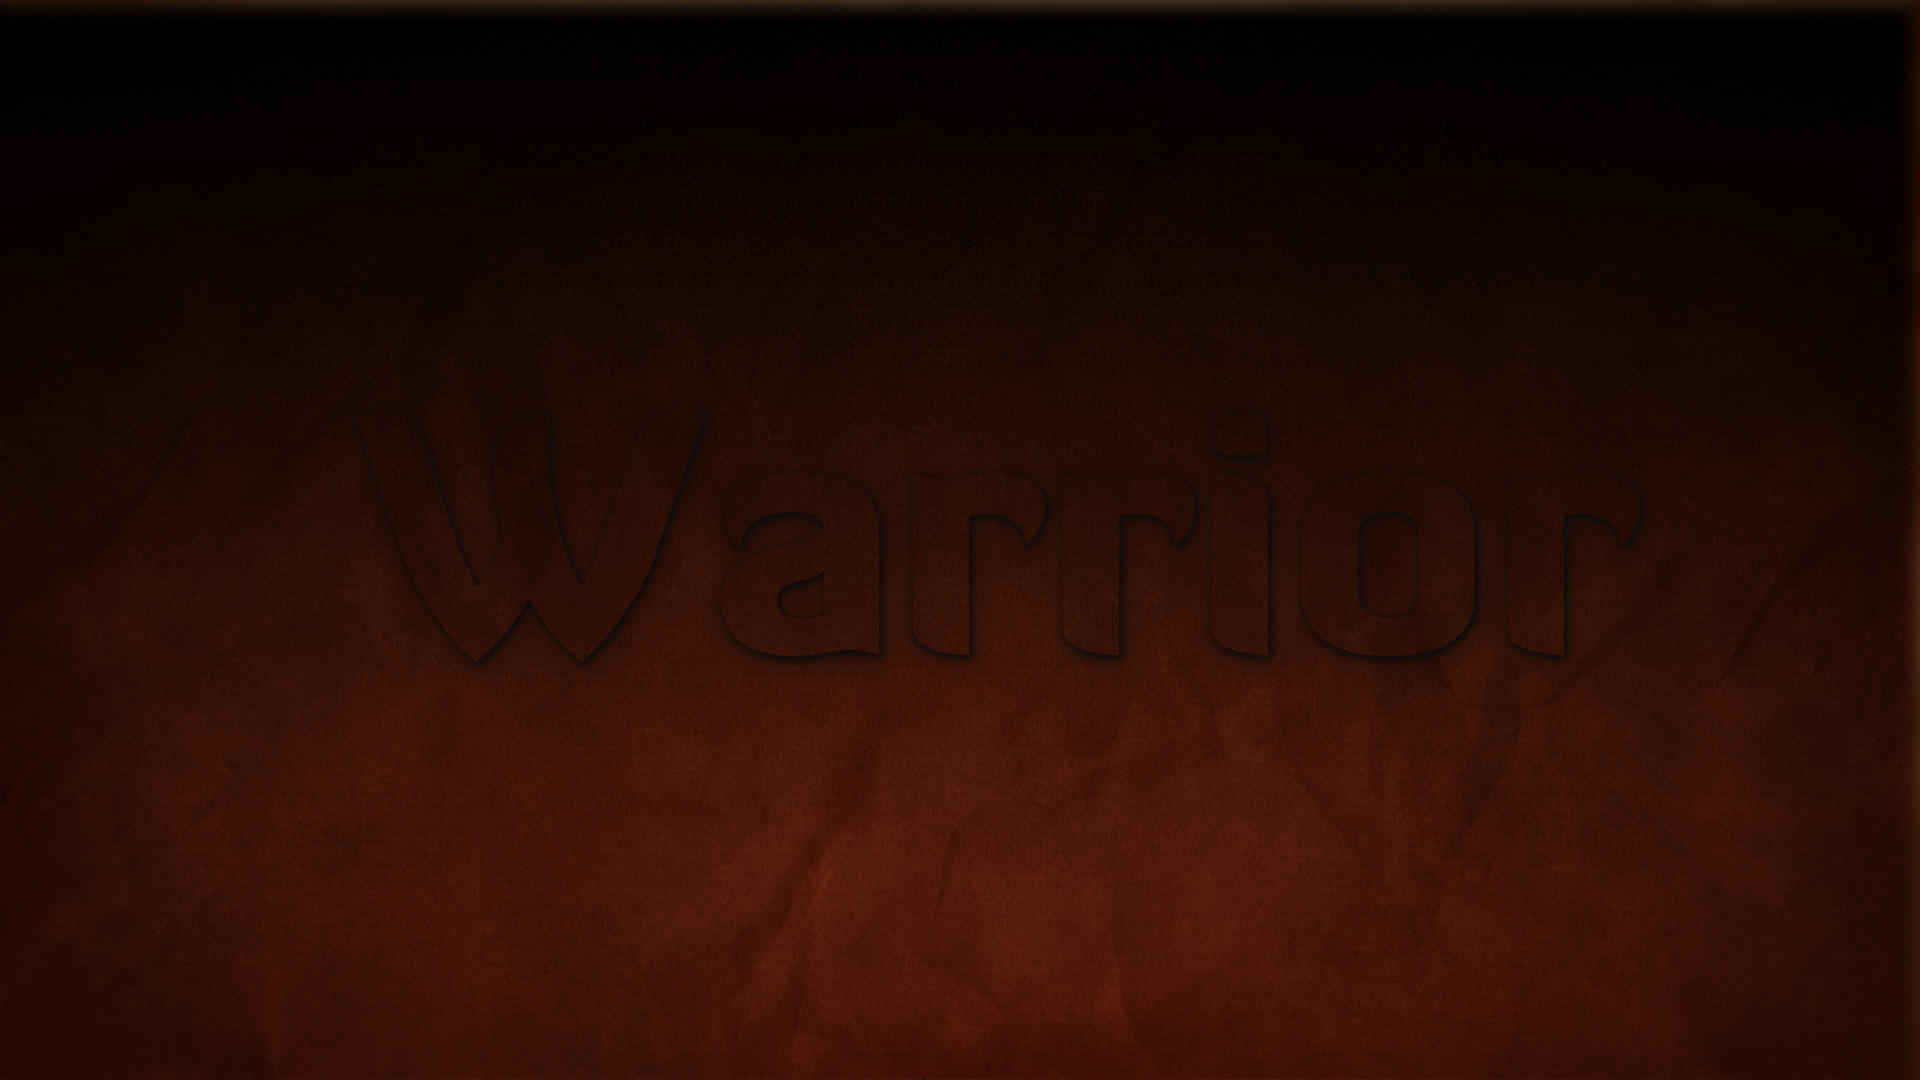 Warrior Wall - for iPhone too by KillingTheEngine